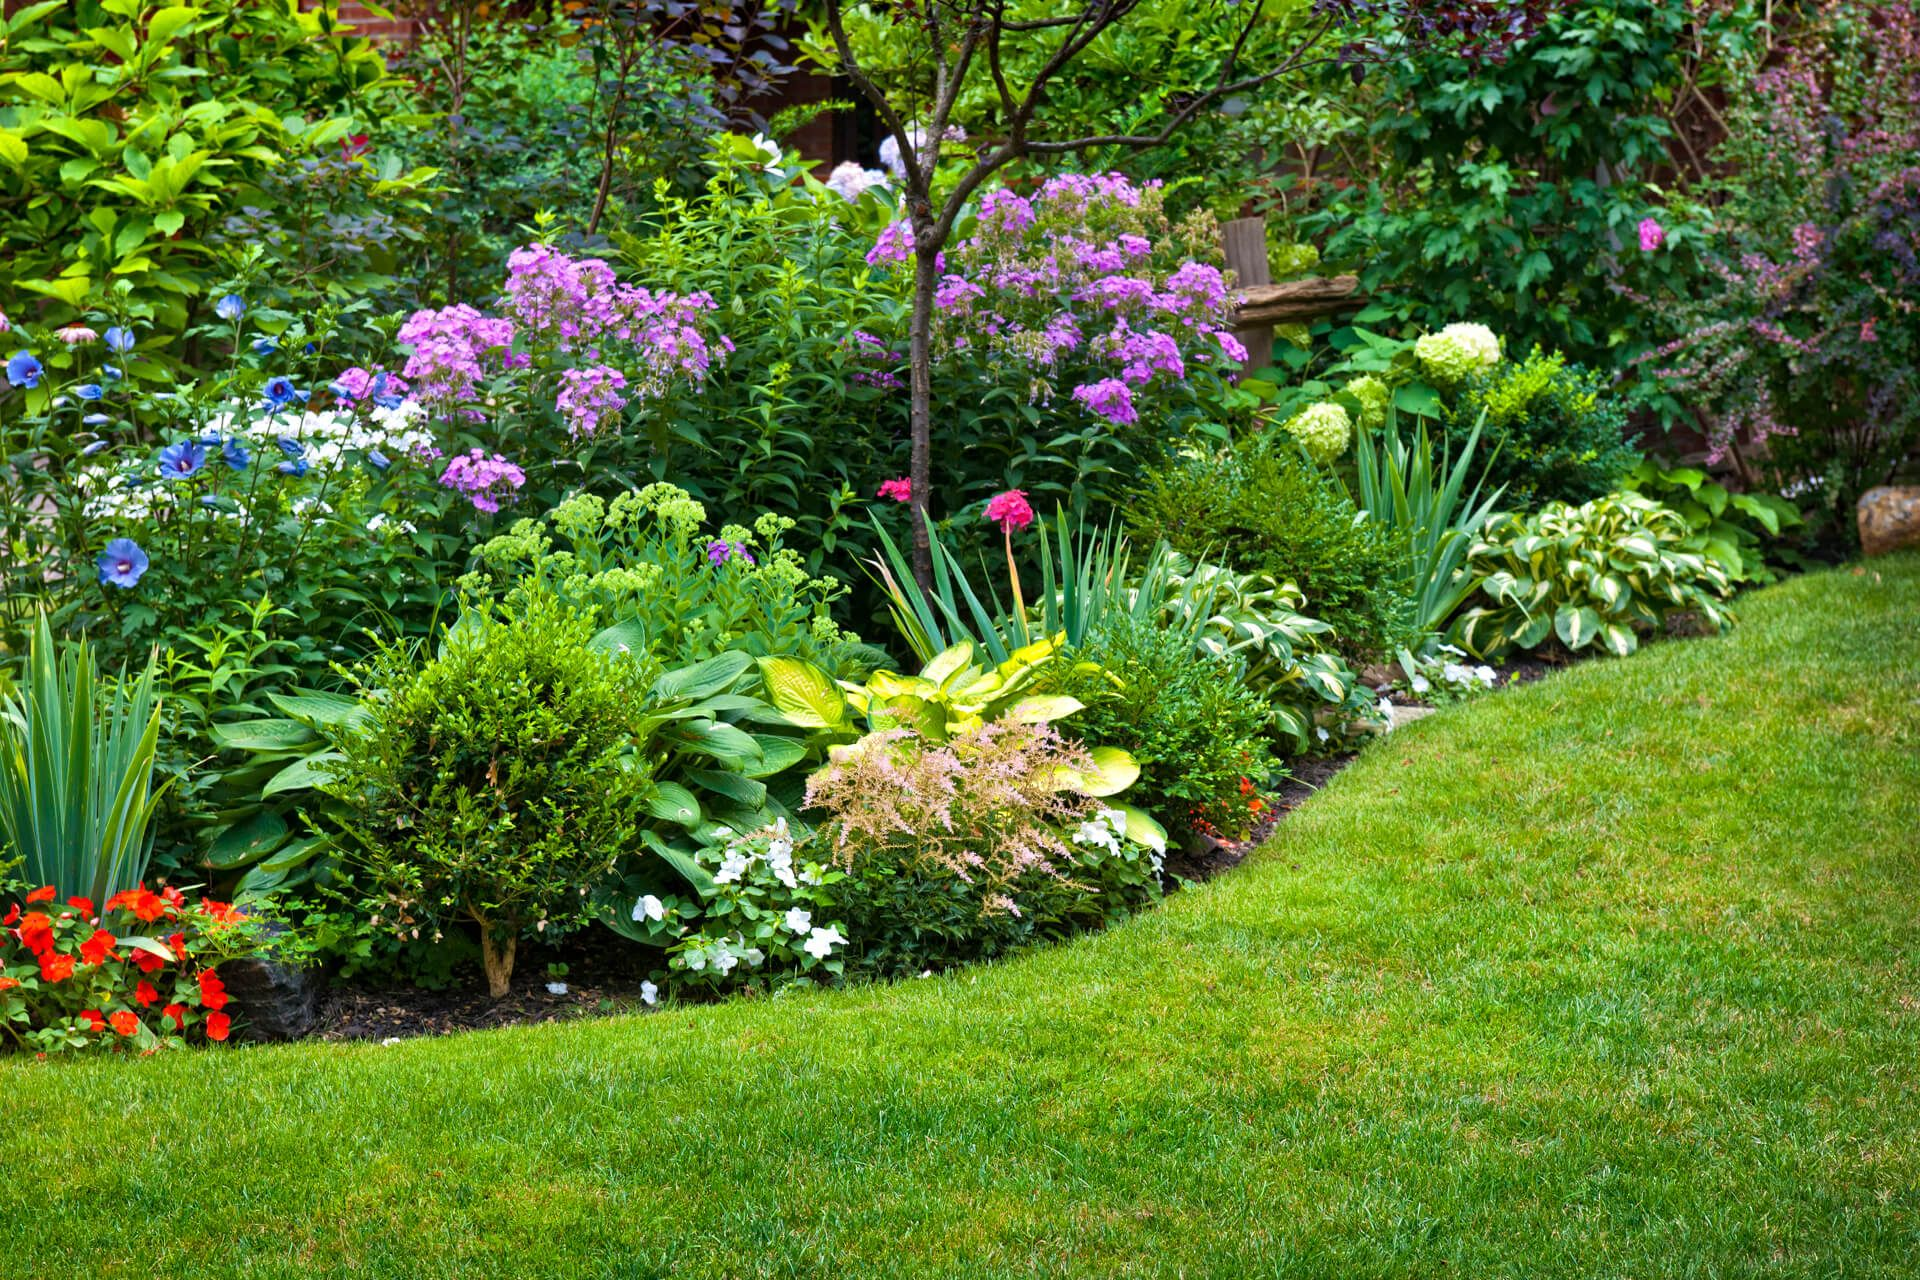 Fight insect invasion in your garden with strategic